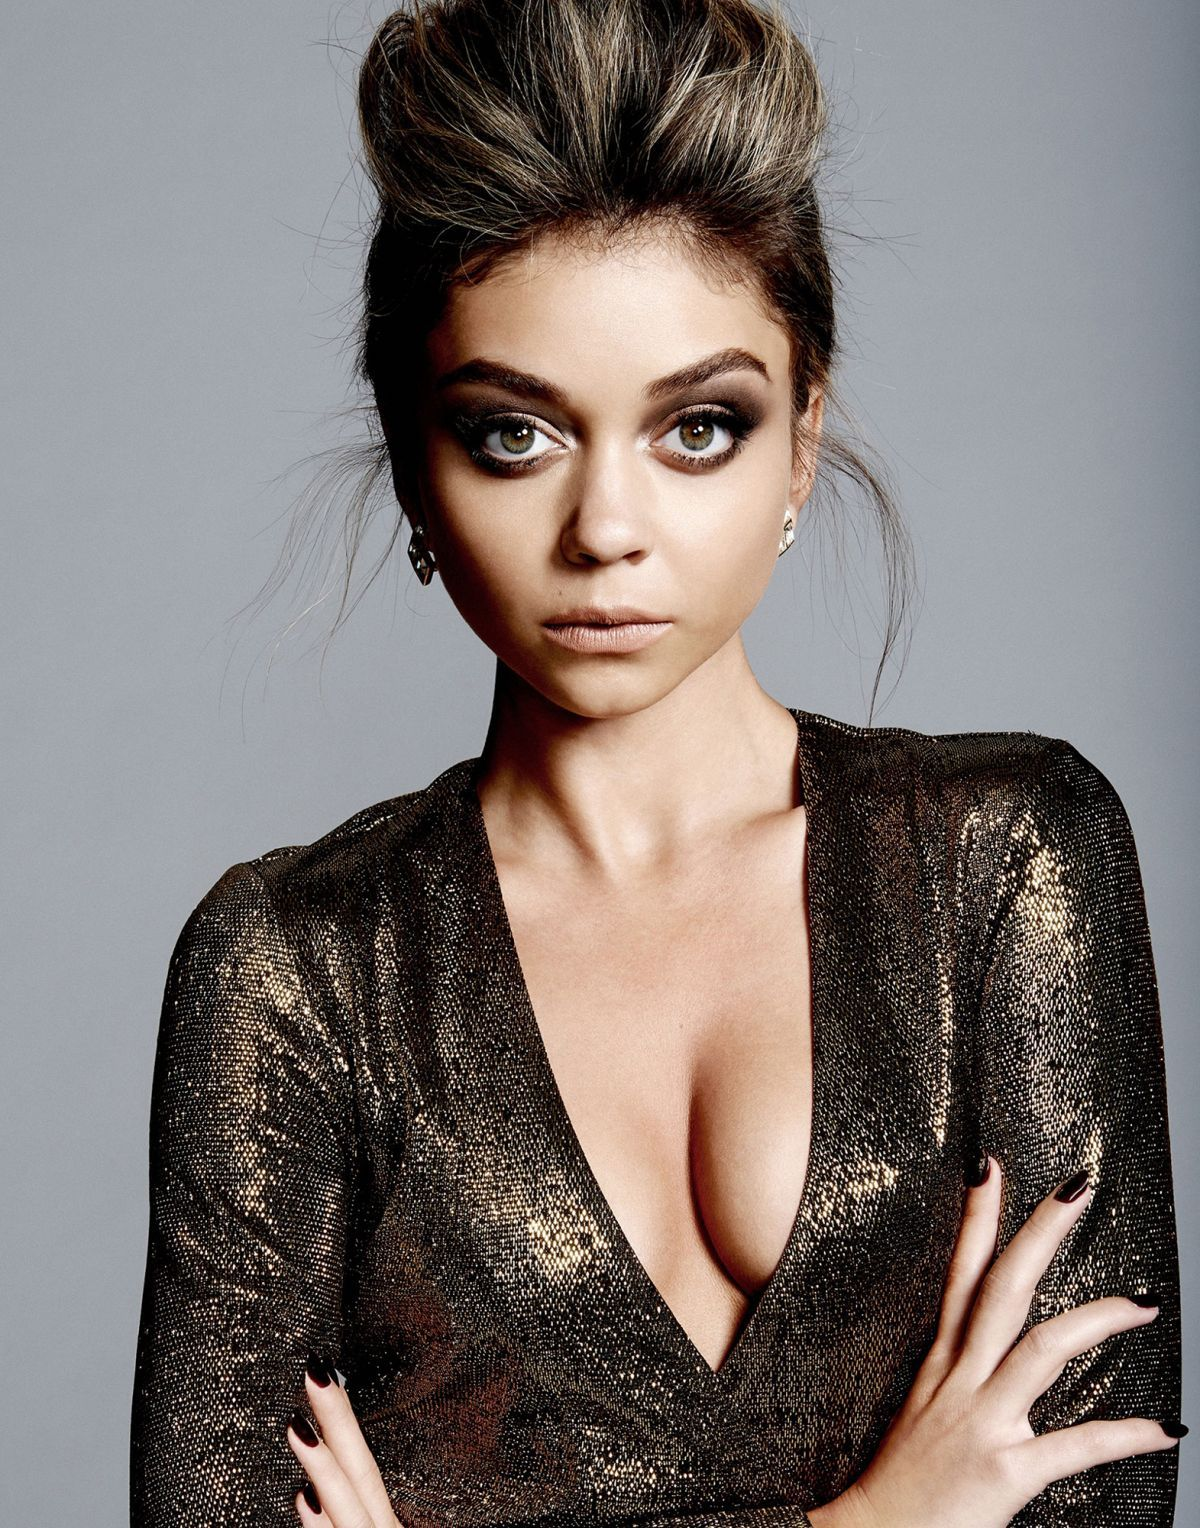 Sarah Hyland Sexy Skinny Legs (42 Photos) | #The Fappening